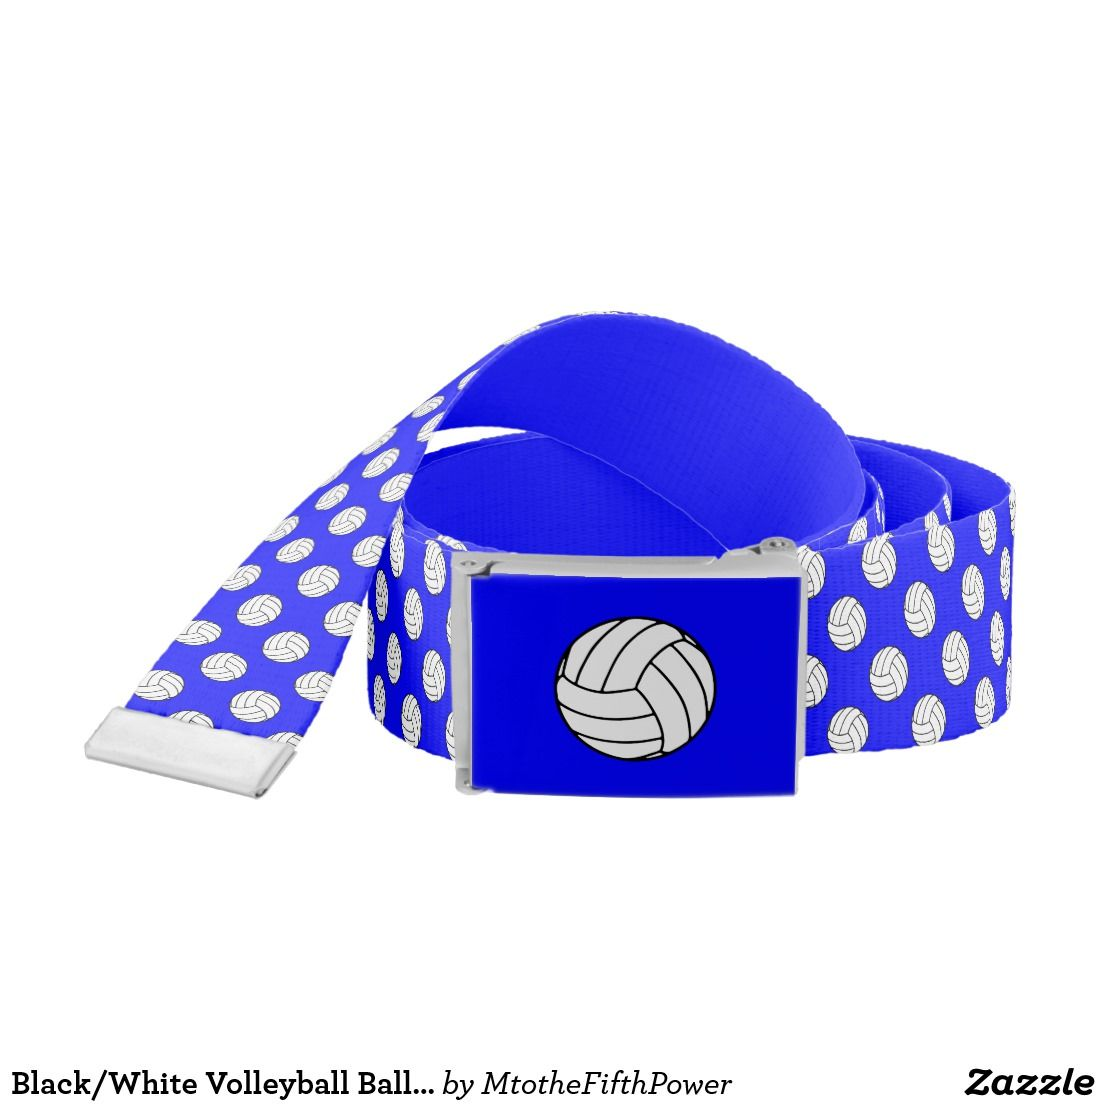 Black White Volleyball Balls Blue Belt By M To The Fifth Power Mtothefifthpower With Images Belt Blue Belt Black Belt